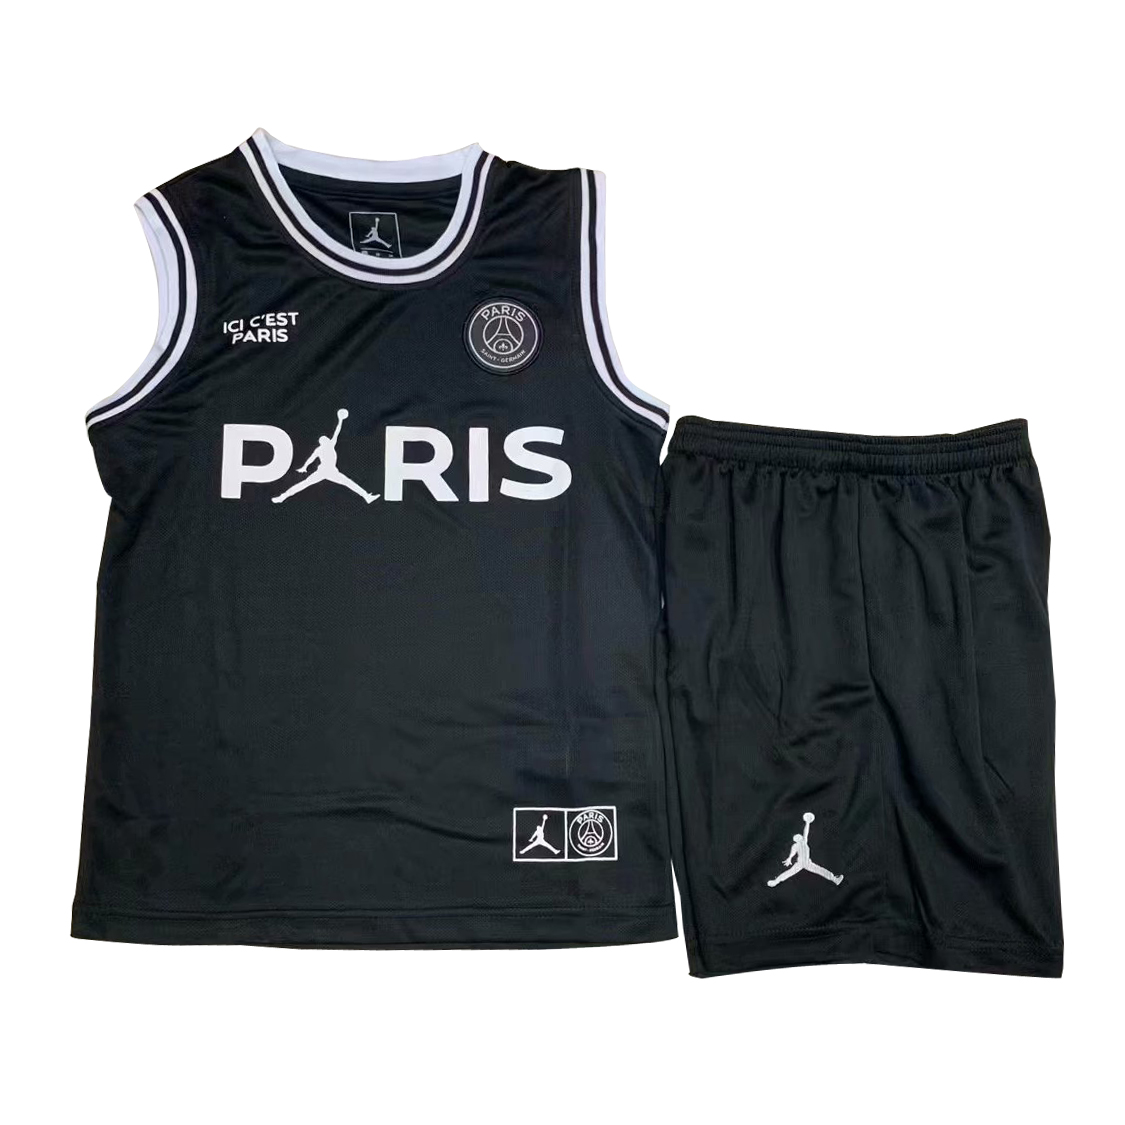 US  14.8 - PSG x Jordan Third Black Basketball Jersey Kids  2018 19 -  www.fcsoccerworld.com 0fb58bd26